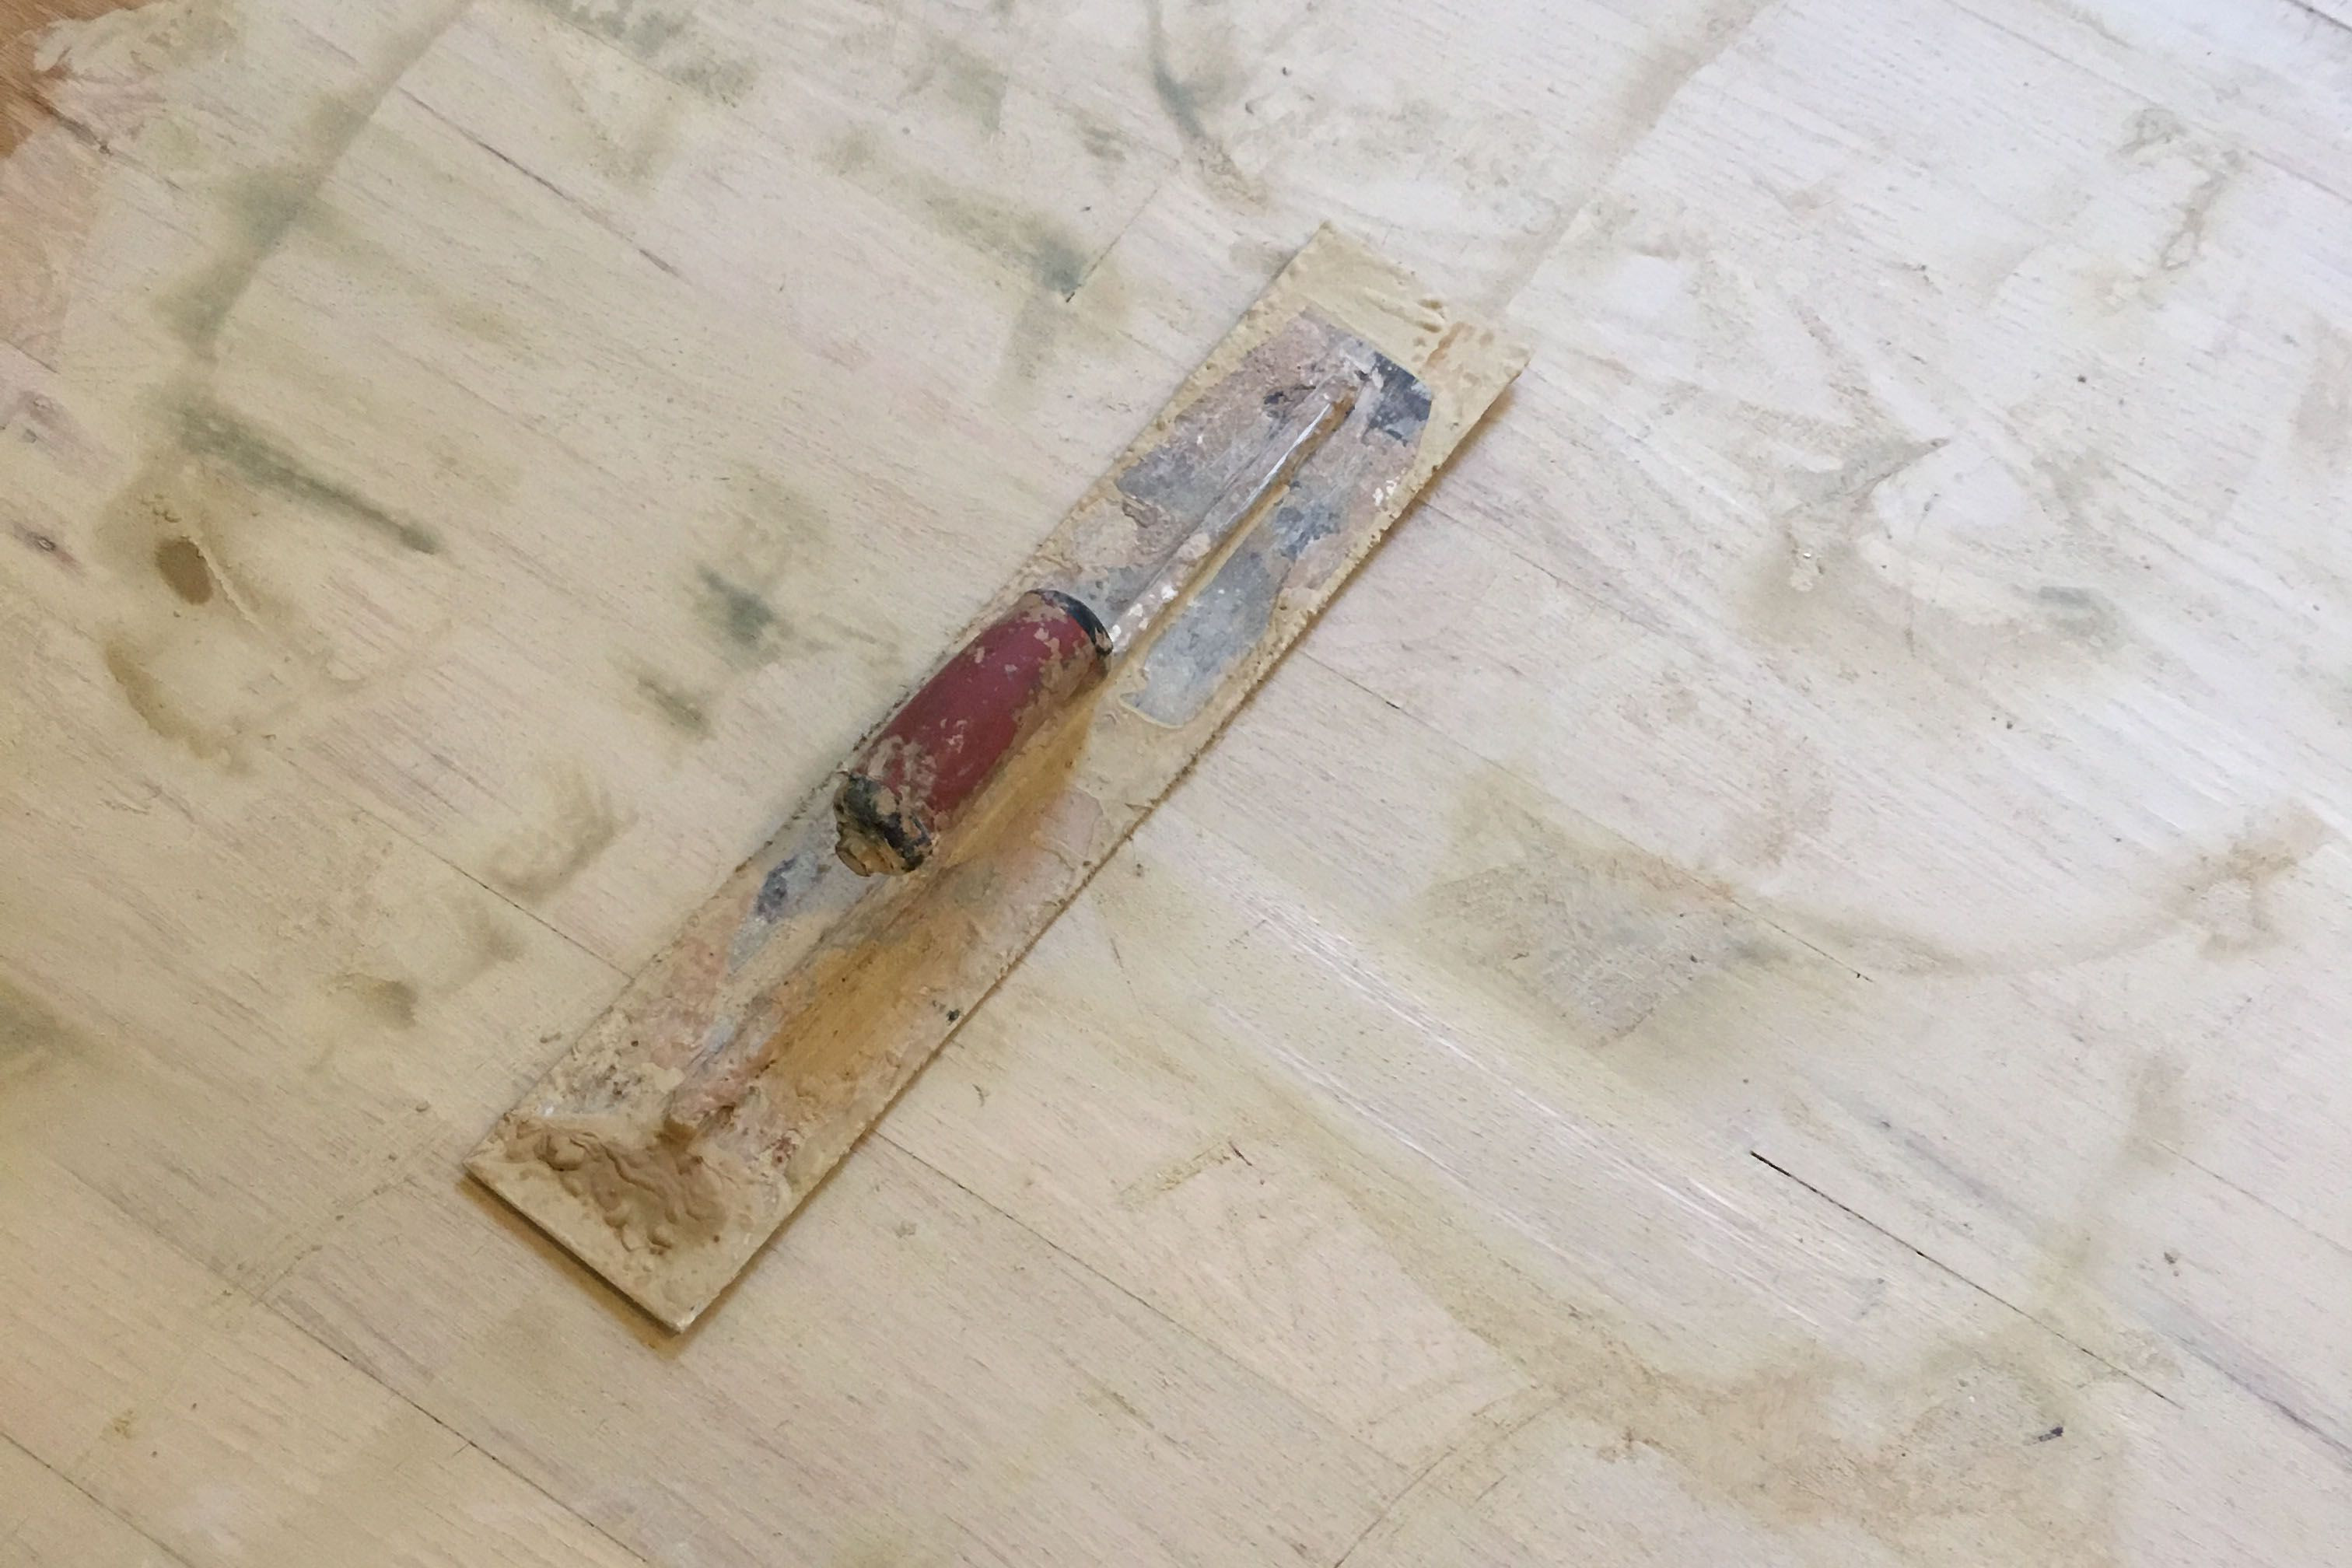 hardwood floor refinishing okc of 7 things to know before you refinish hardwood floors throughout trough hardwood floor manhattan avenue via smallspaces about com 579138783df78c173490f8a5